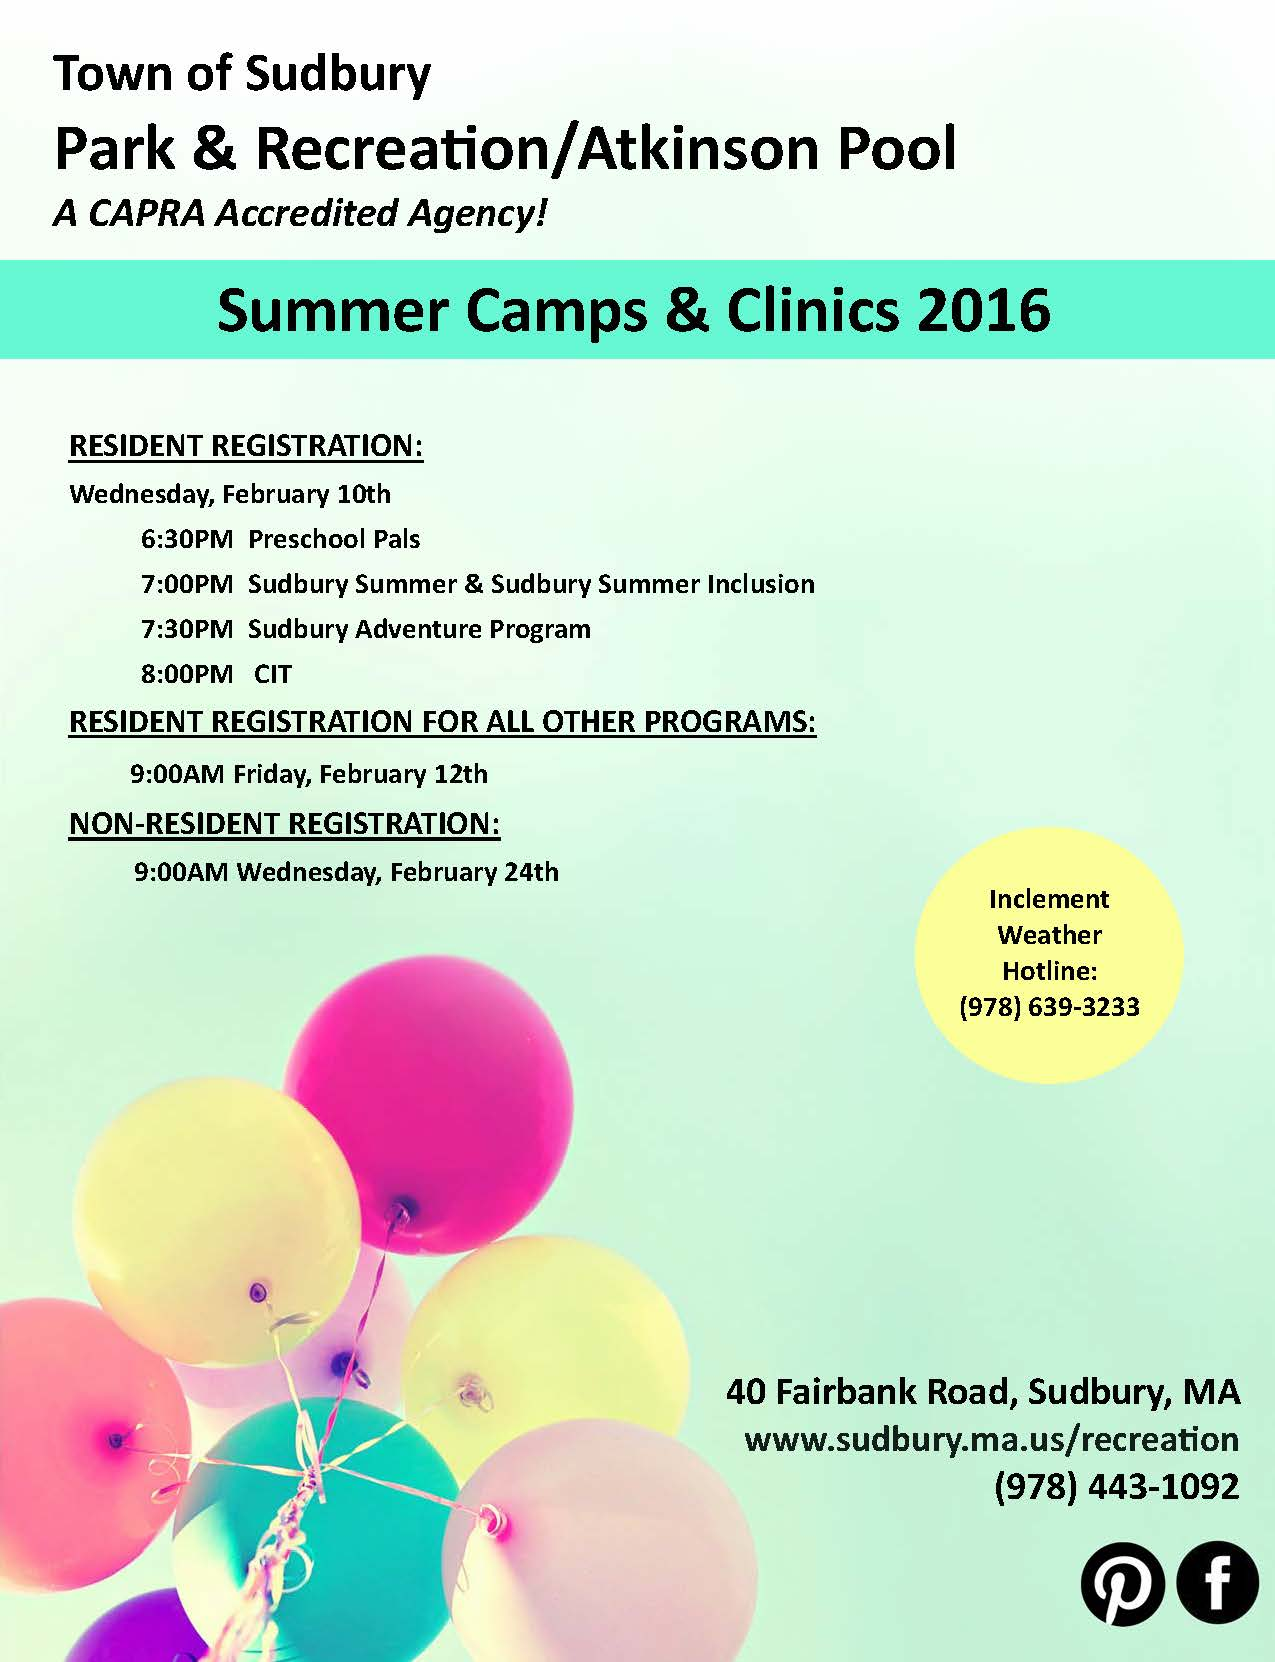 cover letter for summer camp summer camps and clinics brochure park recreation department summer camps and